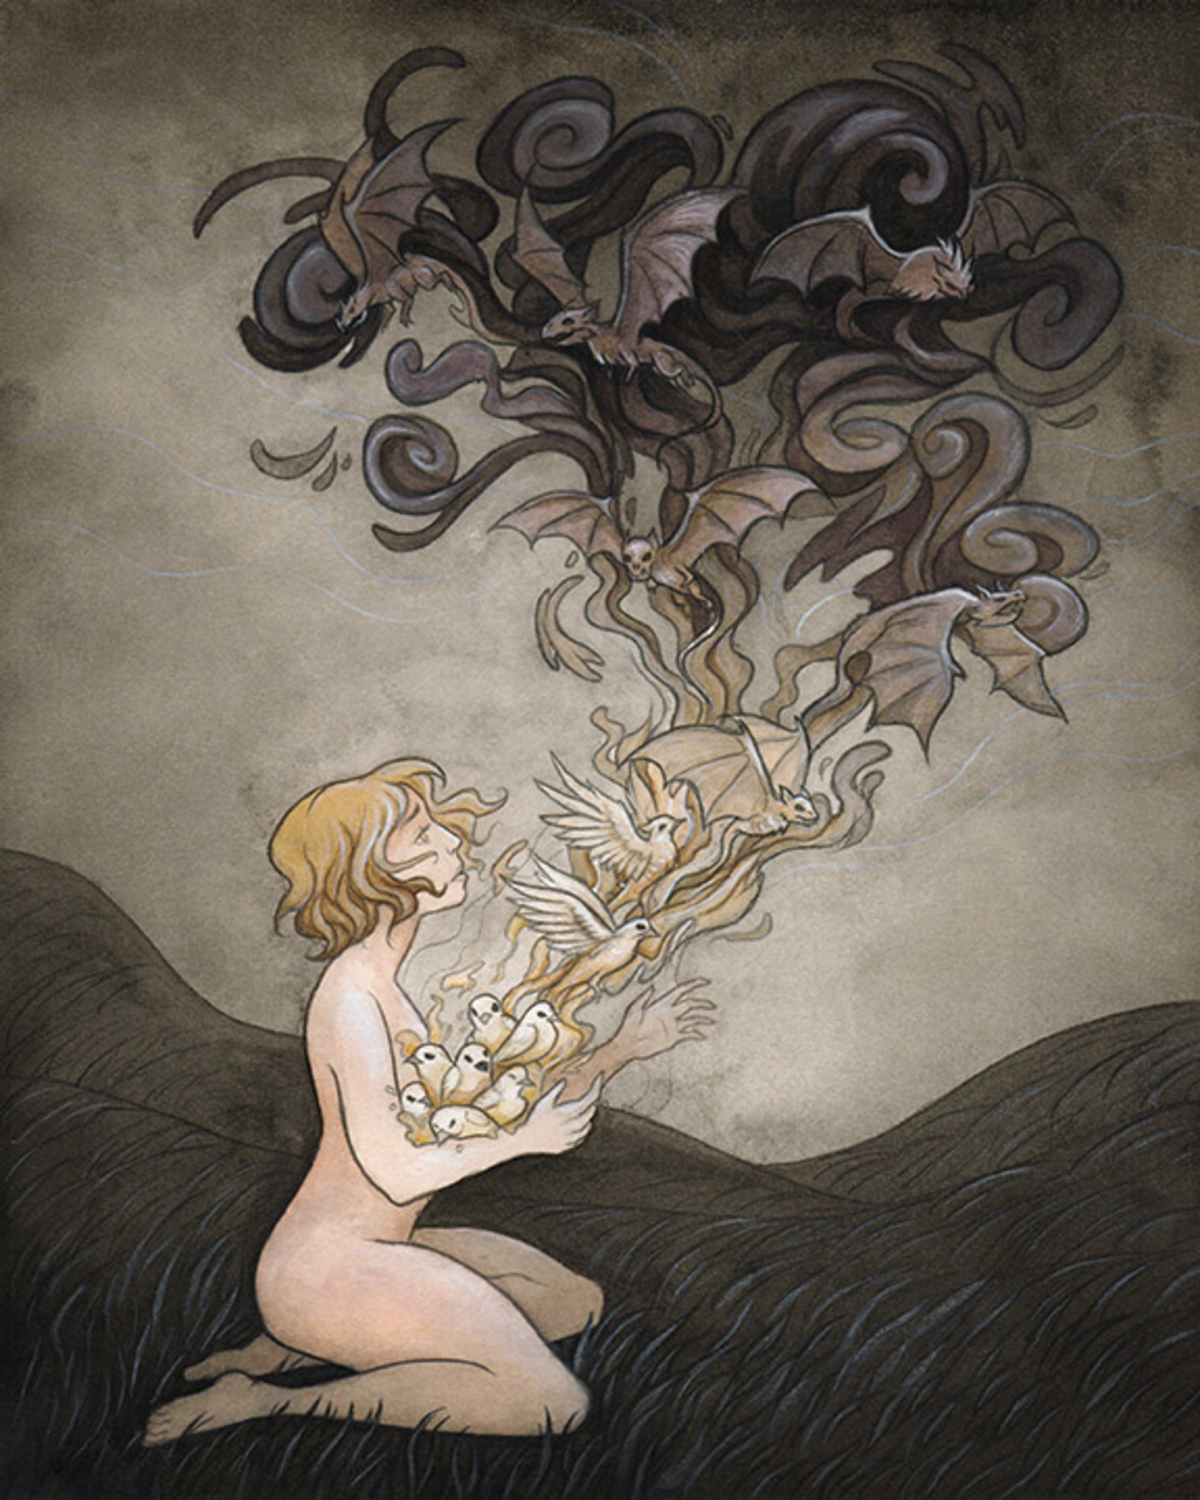 Illusions Lifted Artwork by Madalyn McLeod